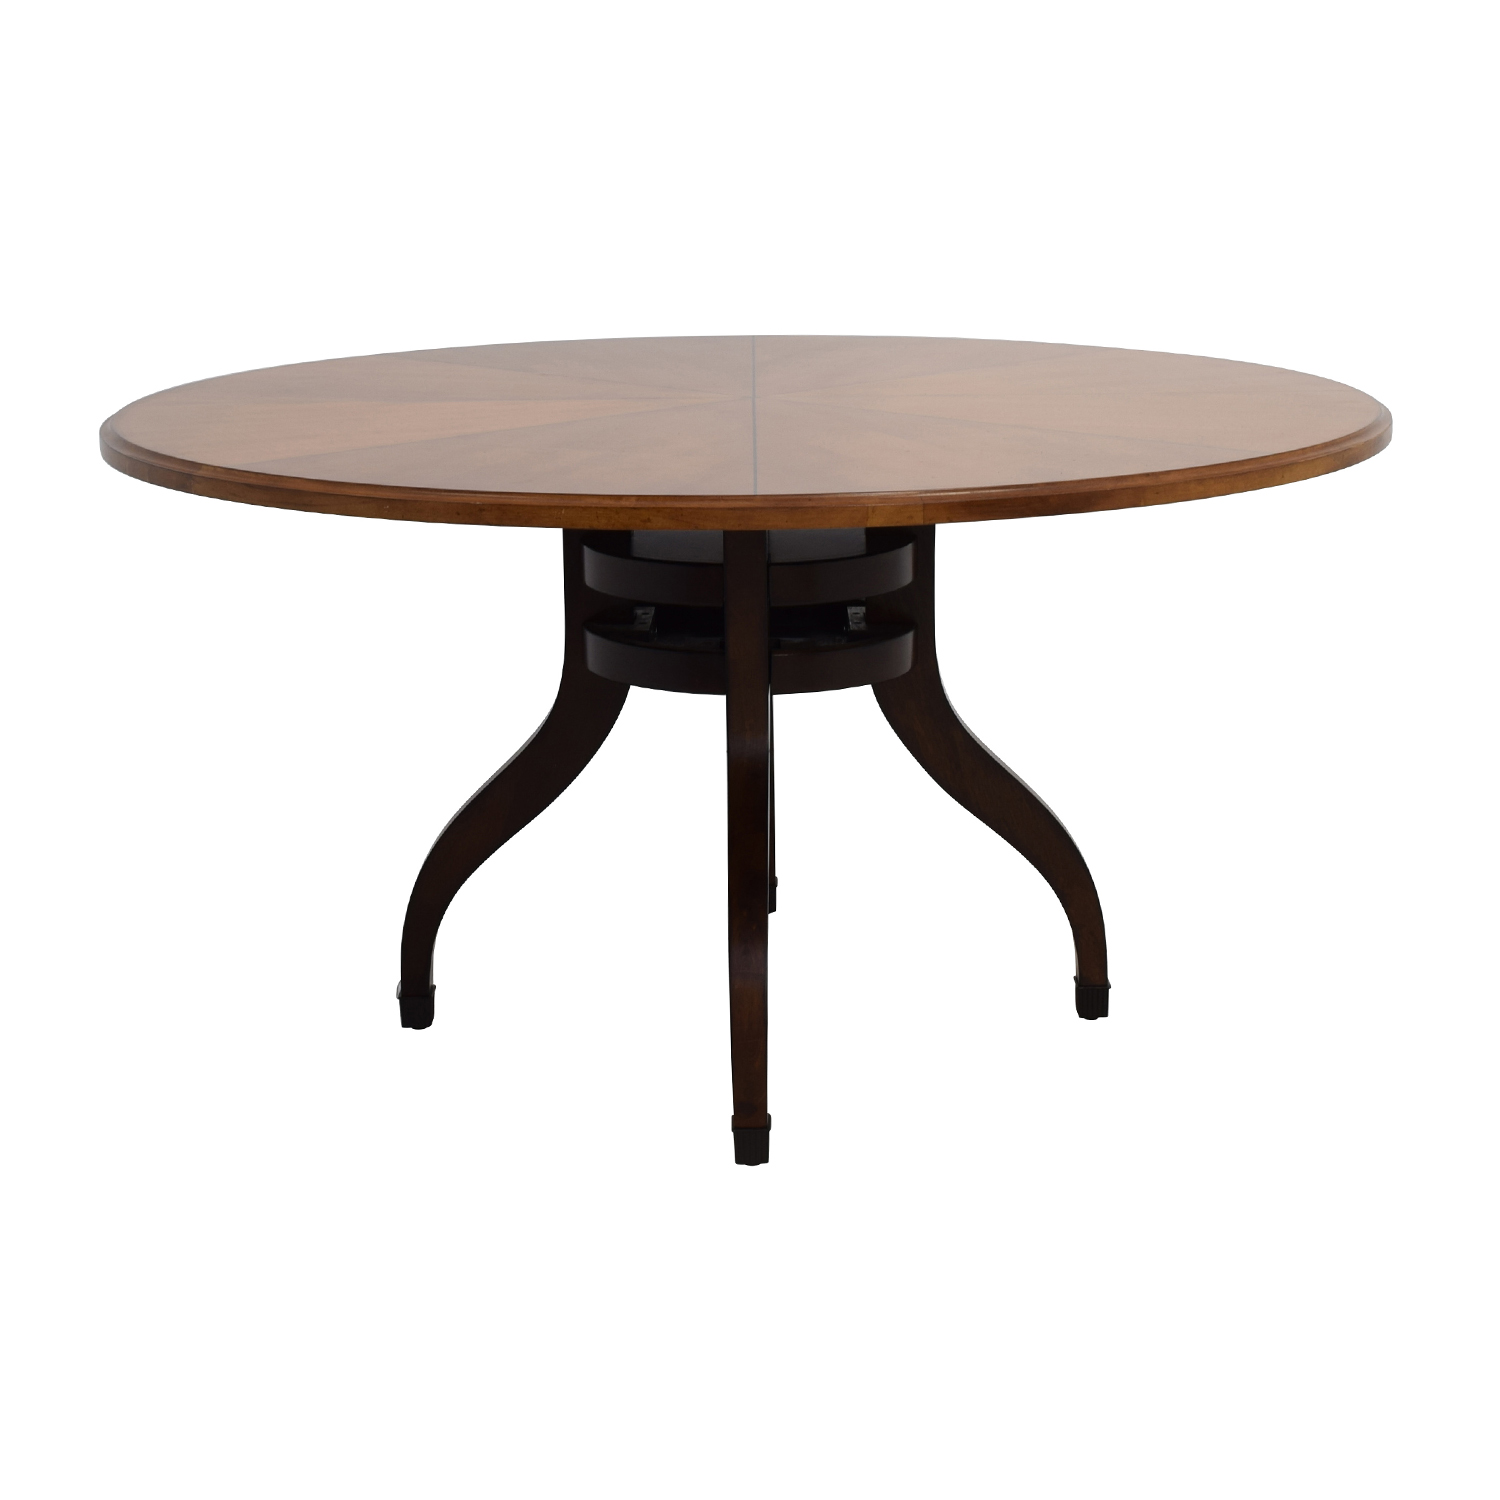 Hooker Furniture Gaia 60 Dining Table sale